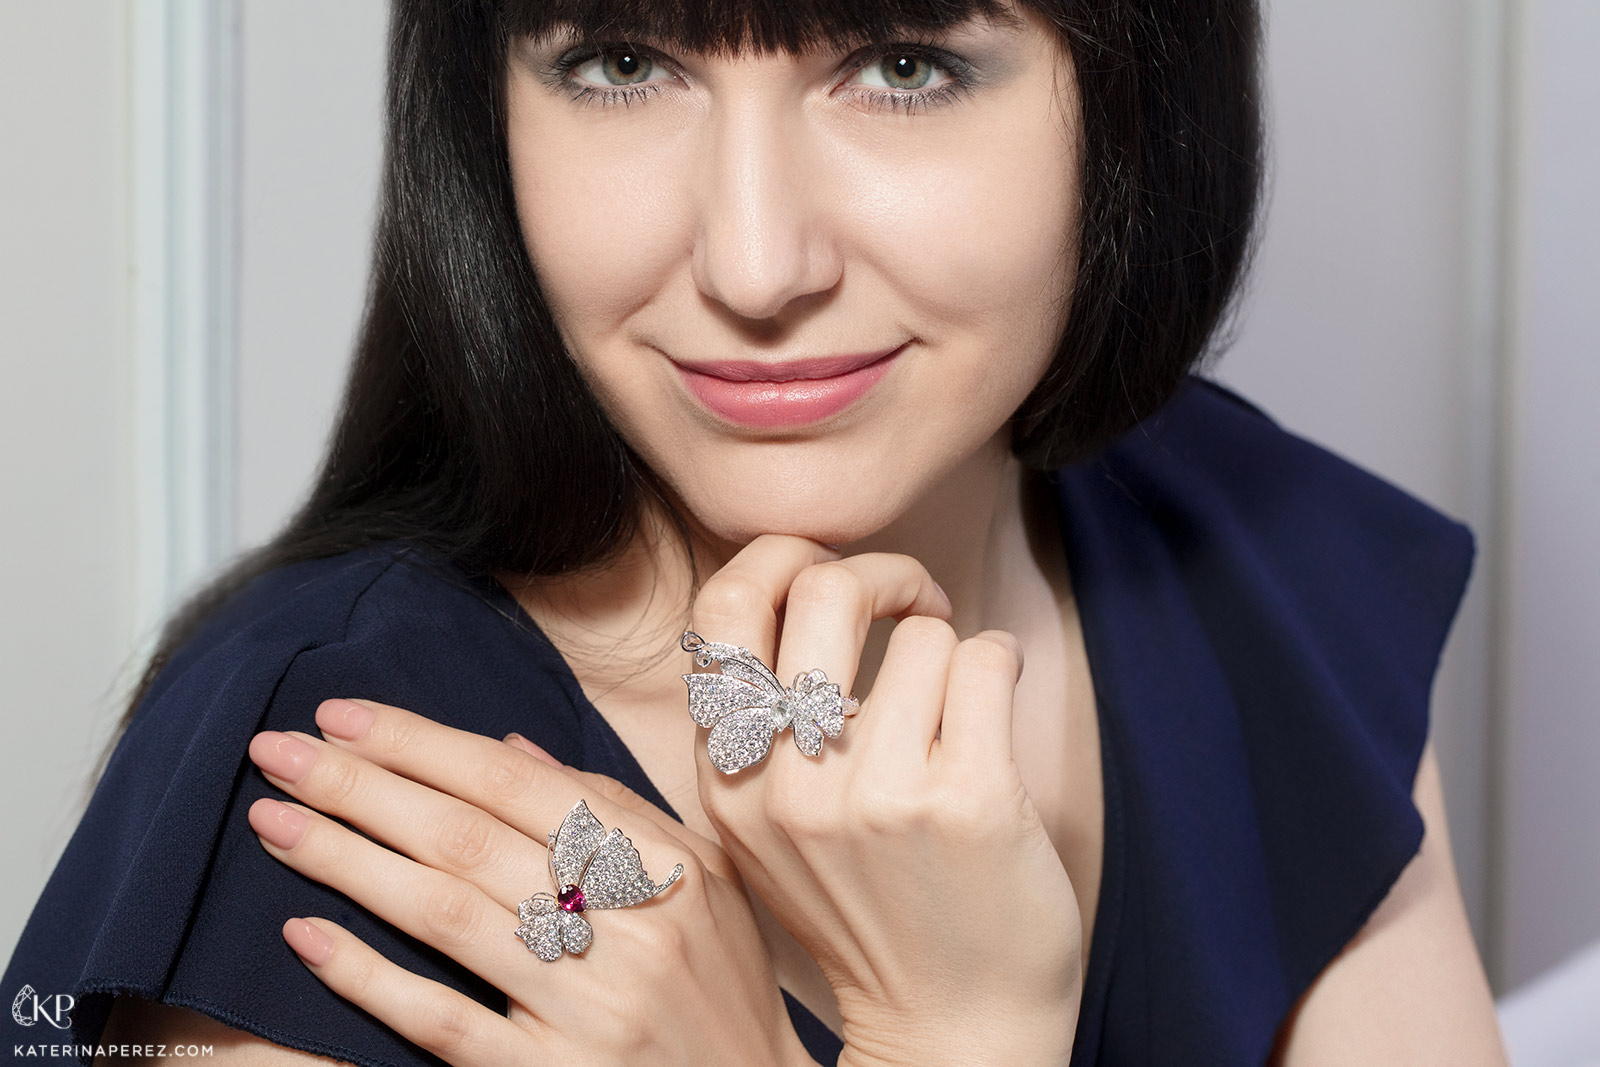 Katerina Perez in Jessica Fong butterfly rings with diamonds and rubellite in 18k white gold